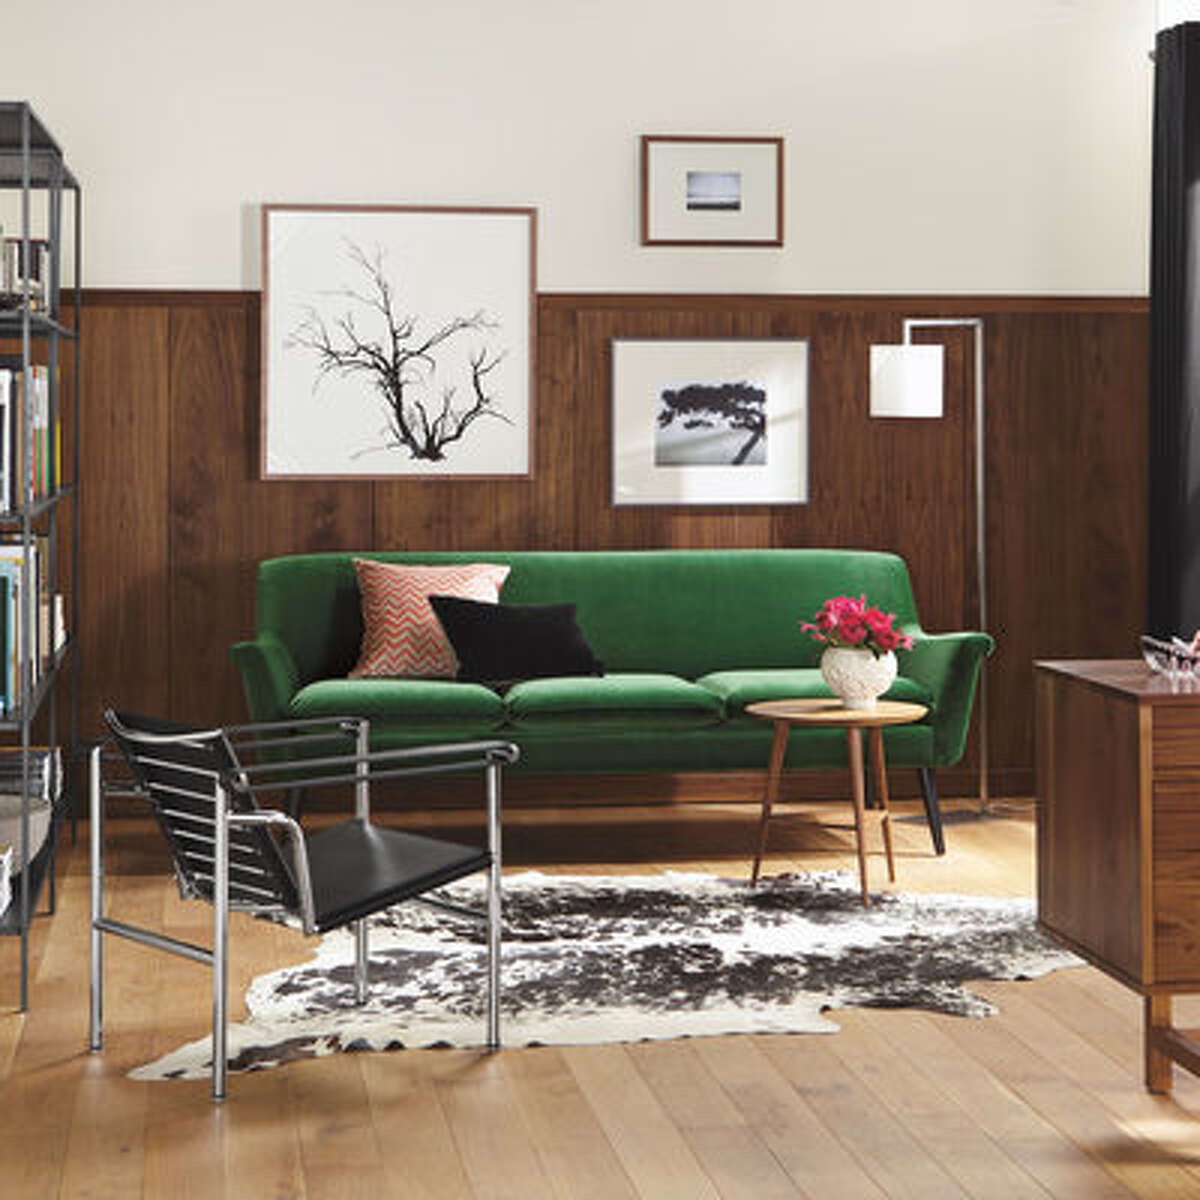 """Make home a gem Murphy sofa in Vance Emerald from Room and Board Seattle-based interior designer and shop keep Brian Paquette says the hunter green and merlot shades (probably) best known for their overuse in '80s-era Ralph Lauren ads are back. """"I am very much attracted to these tones in a new way, in luminous velvets and tone on tone,"""" he says. """"Think a hunter green sofa with hunter green grasscloth and hunter green carpet."""""""